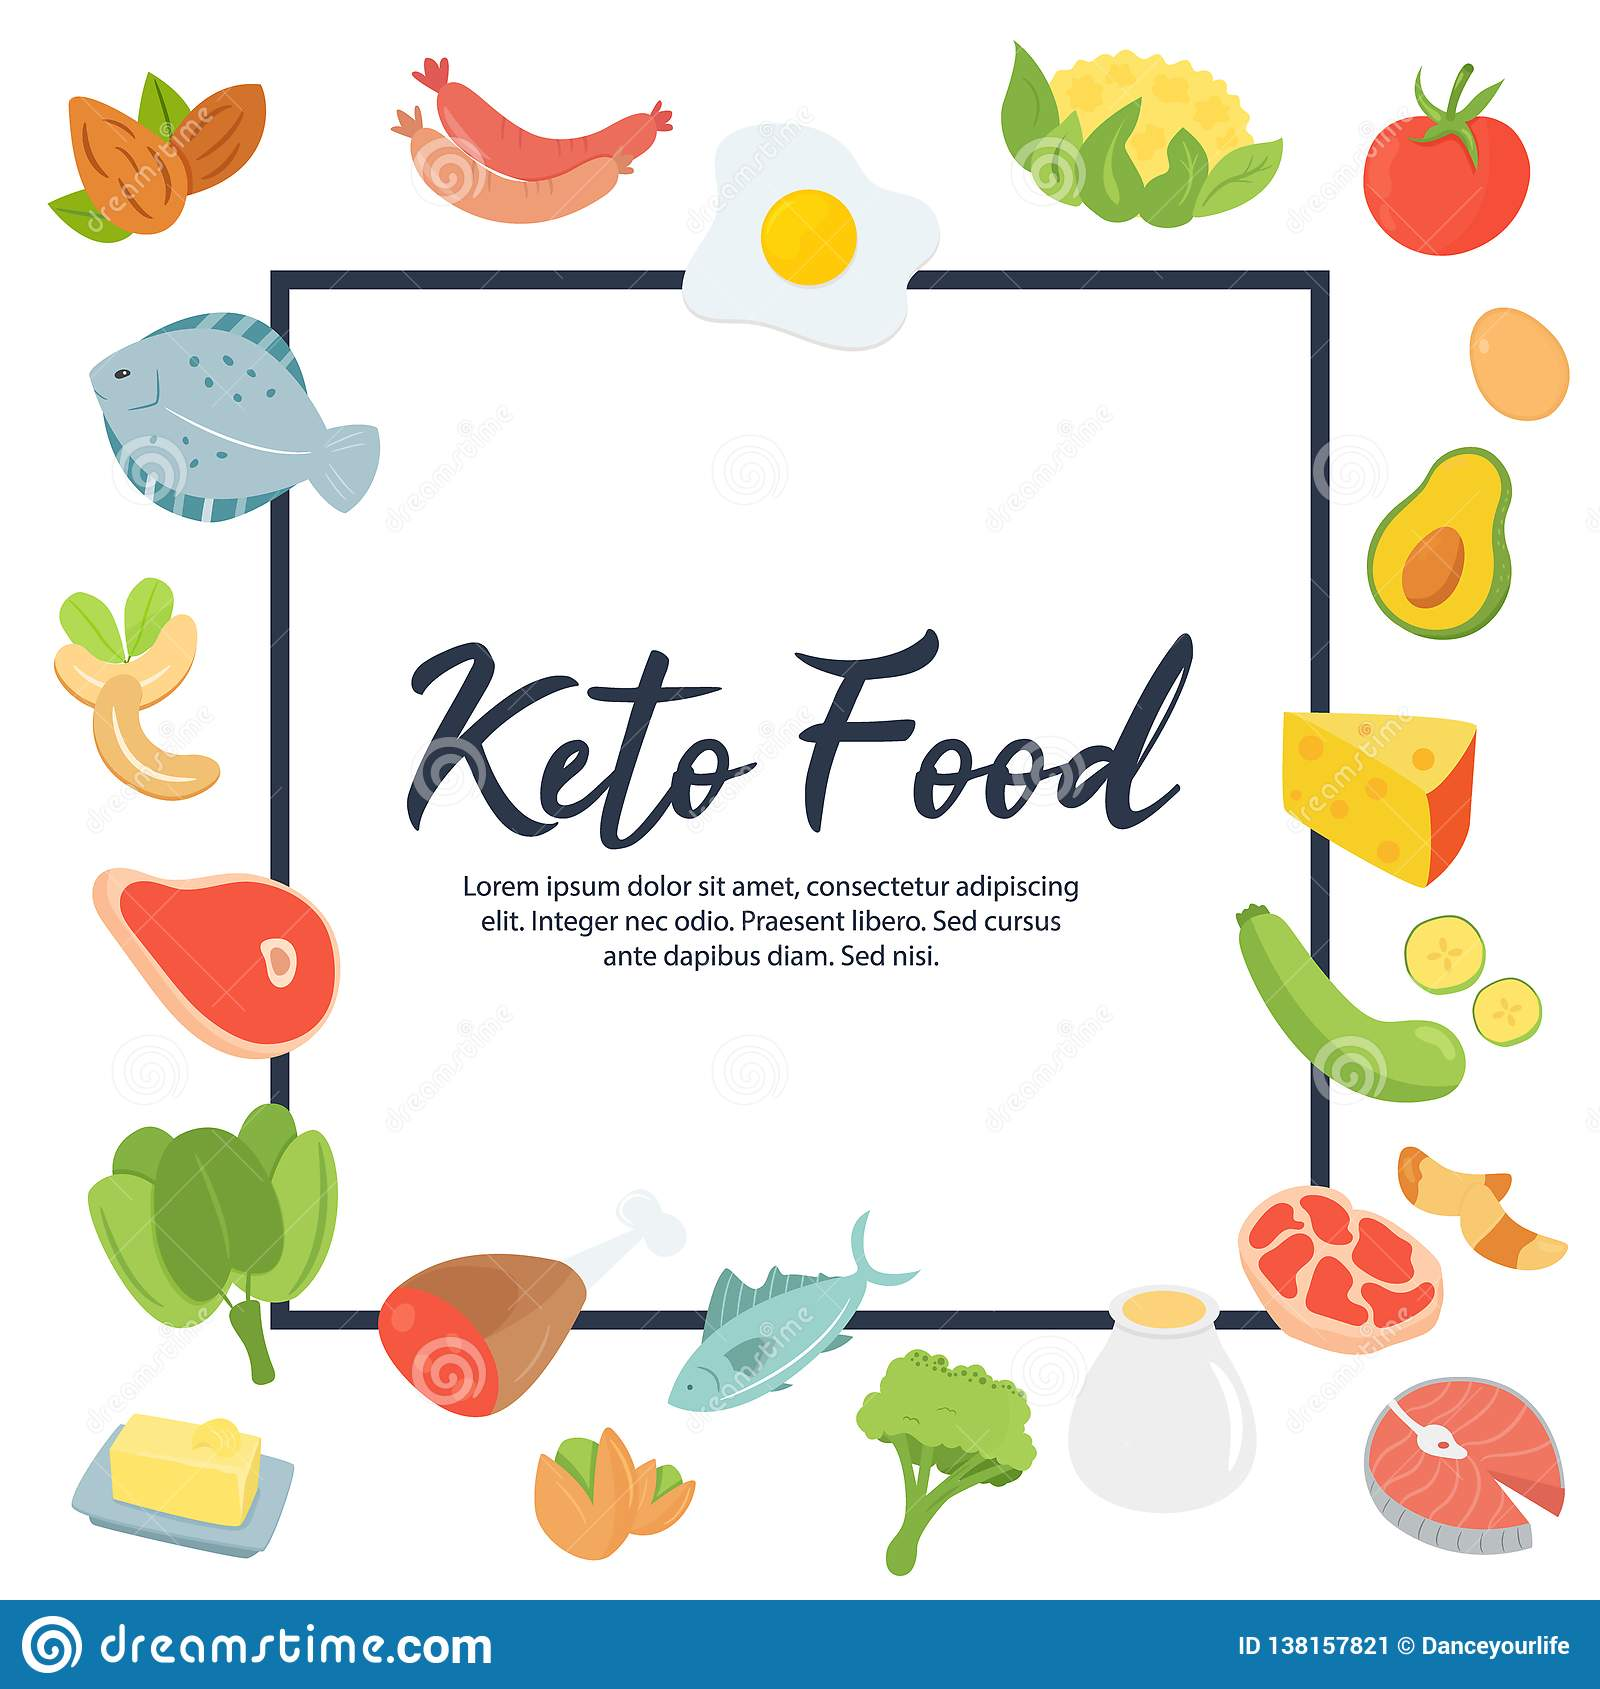 Ketogenic Diet Food Low Carb High Healthy Fats Stock Vector Illustration Of Decor Carbohydrates 138157821